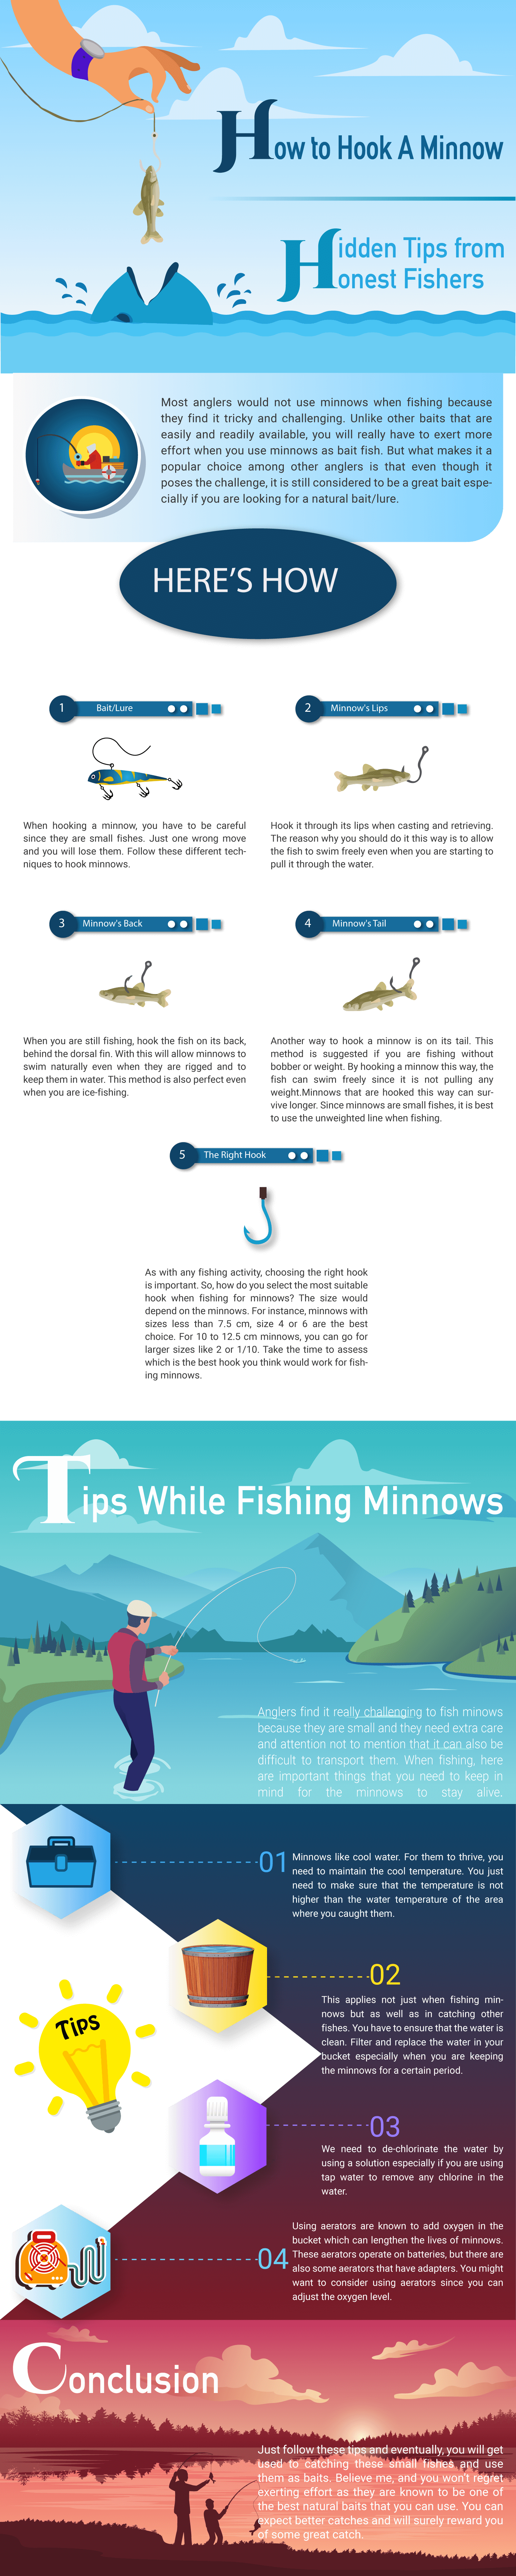 How-to-Hook-a-Minnow-Hidden-Tips-from-Honest-Fishers